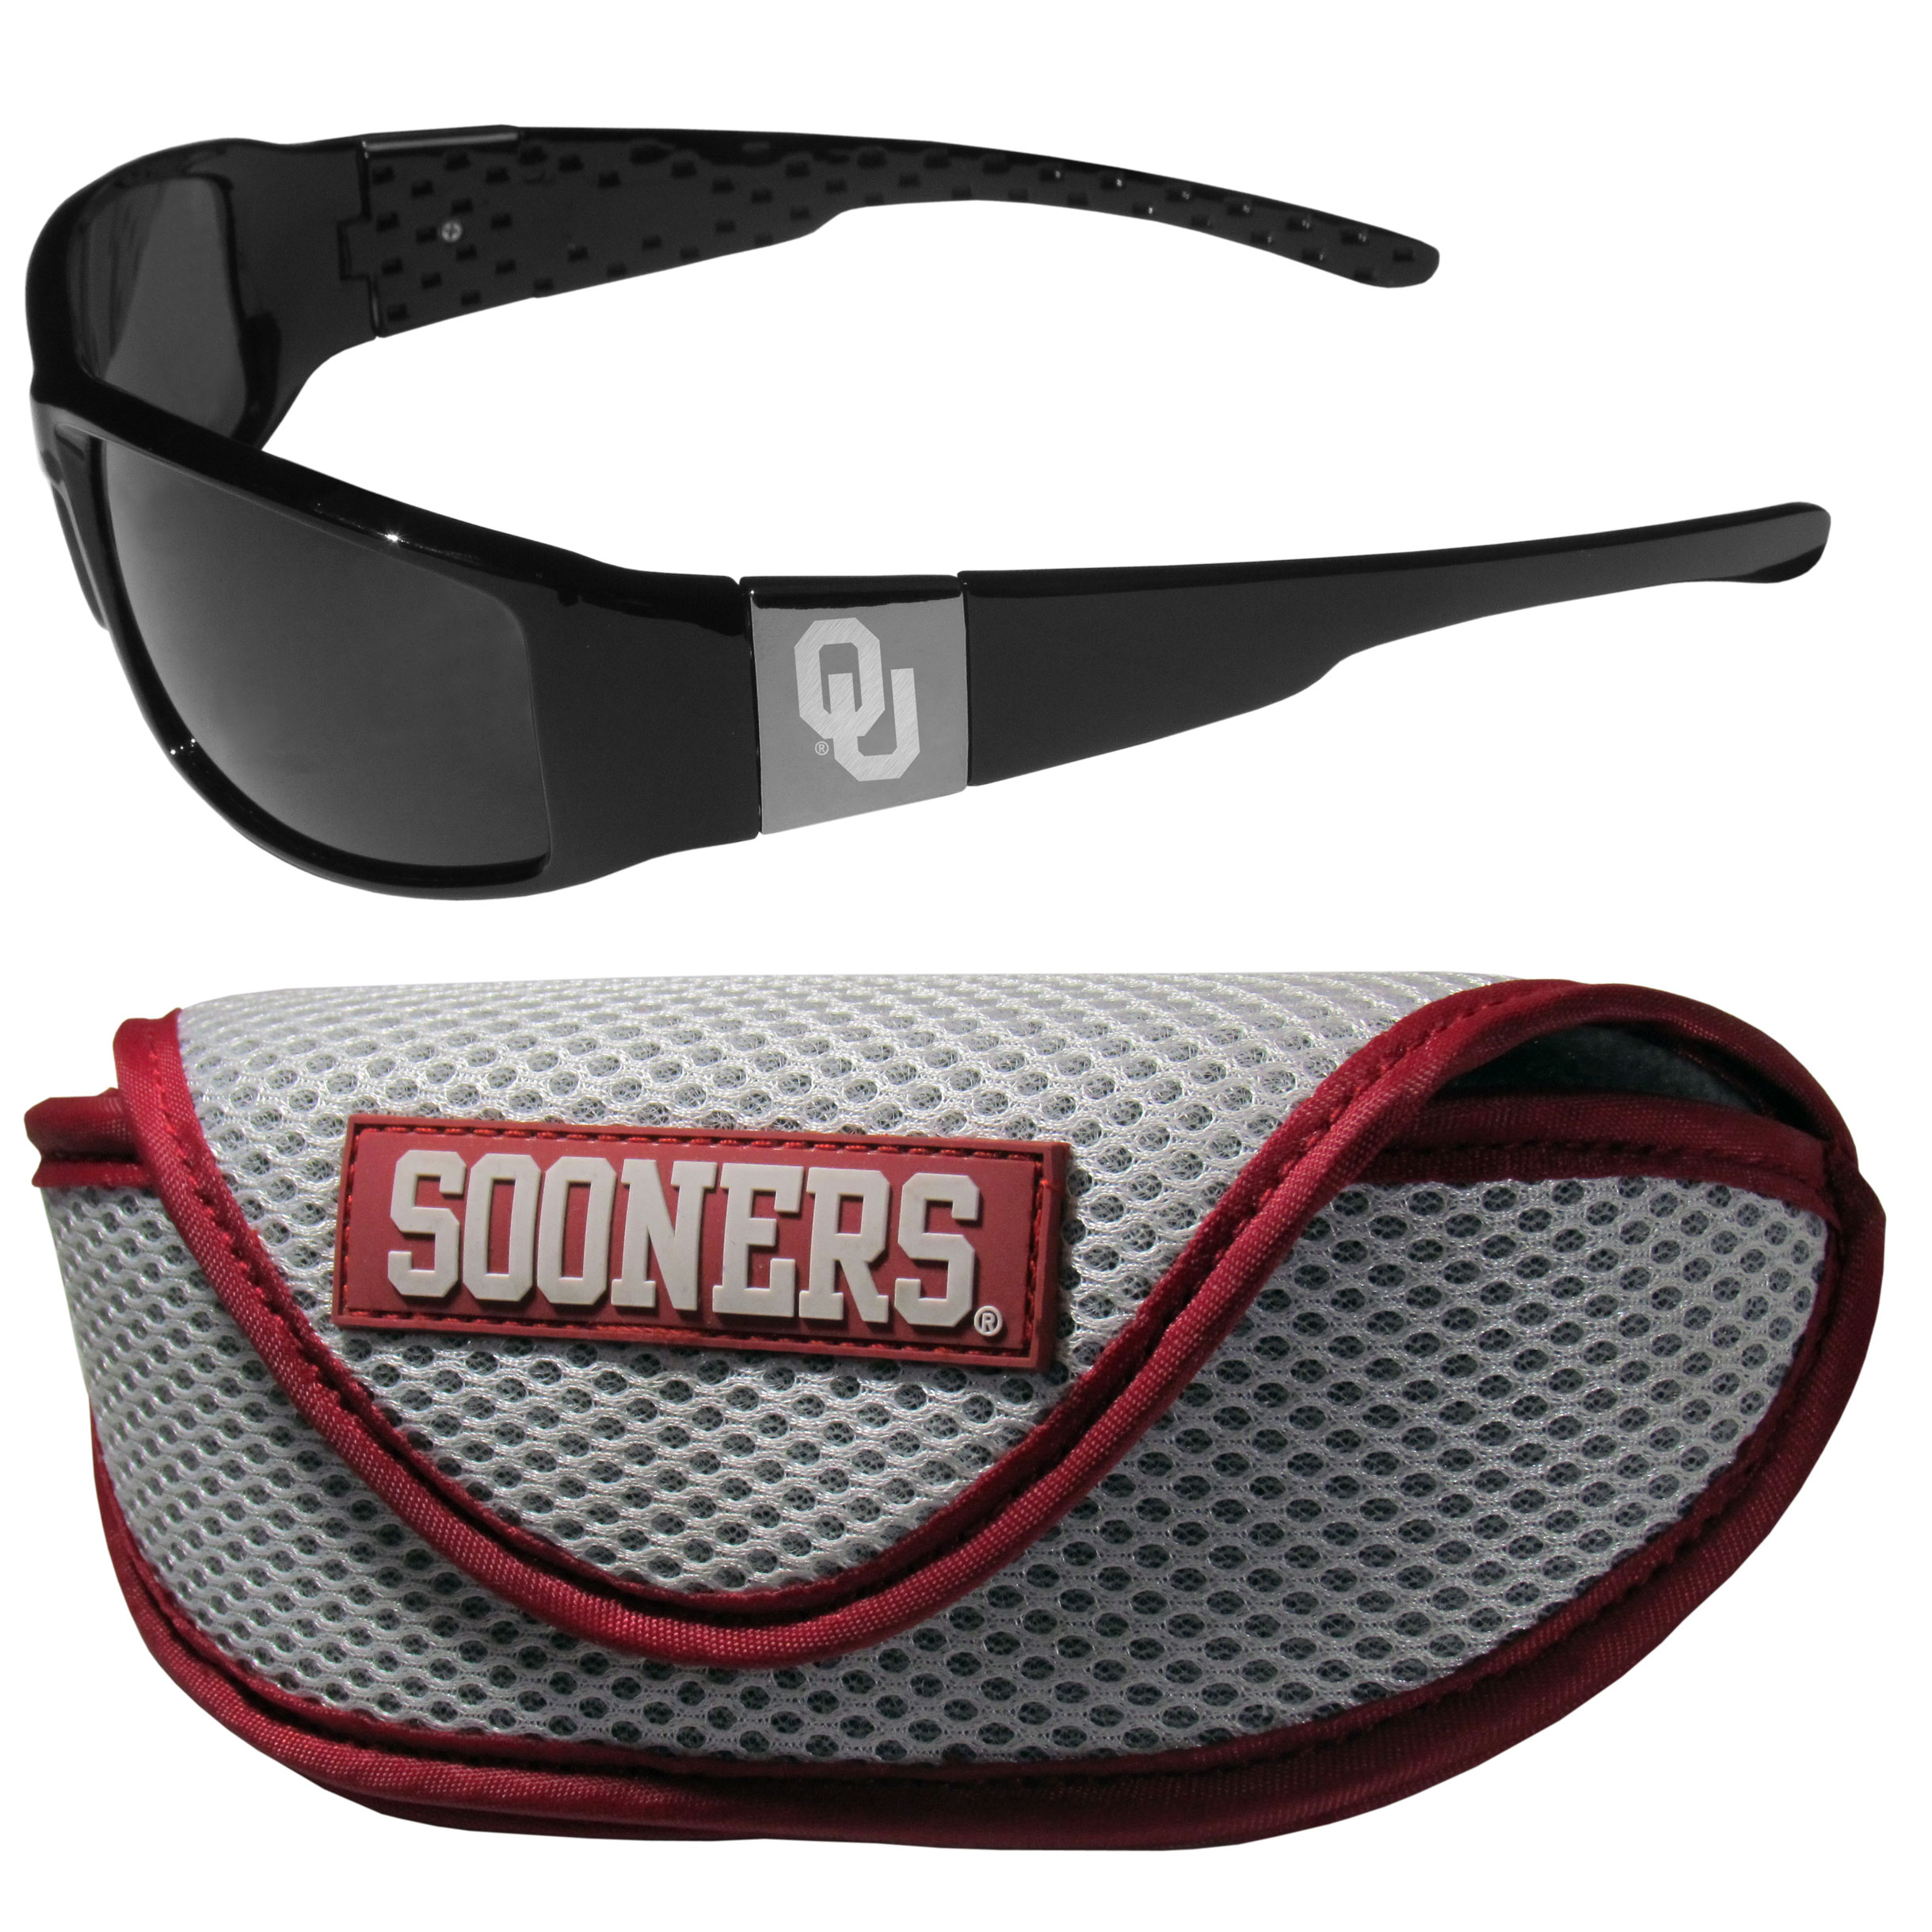 Oklahoma Sooners Chrome Wrap Sunglasses and Sport Carrying Case - These designer inspired frames have a sleek look in all black with high-polish chrome Oklahoma Sooners shields on each arm with an etched logo. The shades are perfect any outdoor activity like; golfing, driving, hiking, fishing or cheering on the team at a tailgating event or an at home game day BBQ with a lens rating of 100% UVA/UVB for maximum UV protection. The high-quality frames are as durable as they are fashionable and with their classic look they are perfect fan accessory that can be worn everyday for every occasion. The shades come with a zippered hard shell case to keep your sunglasses safe.